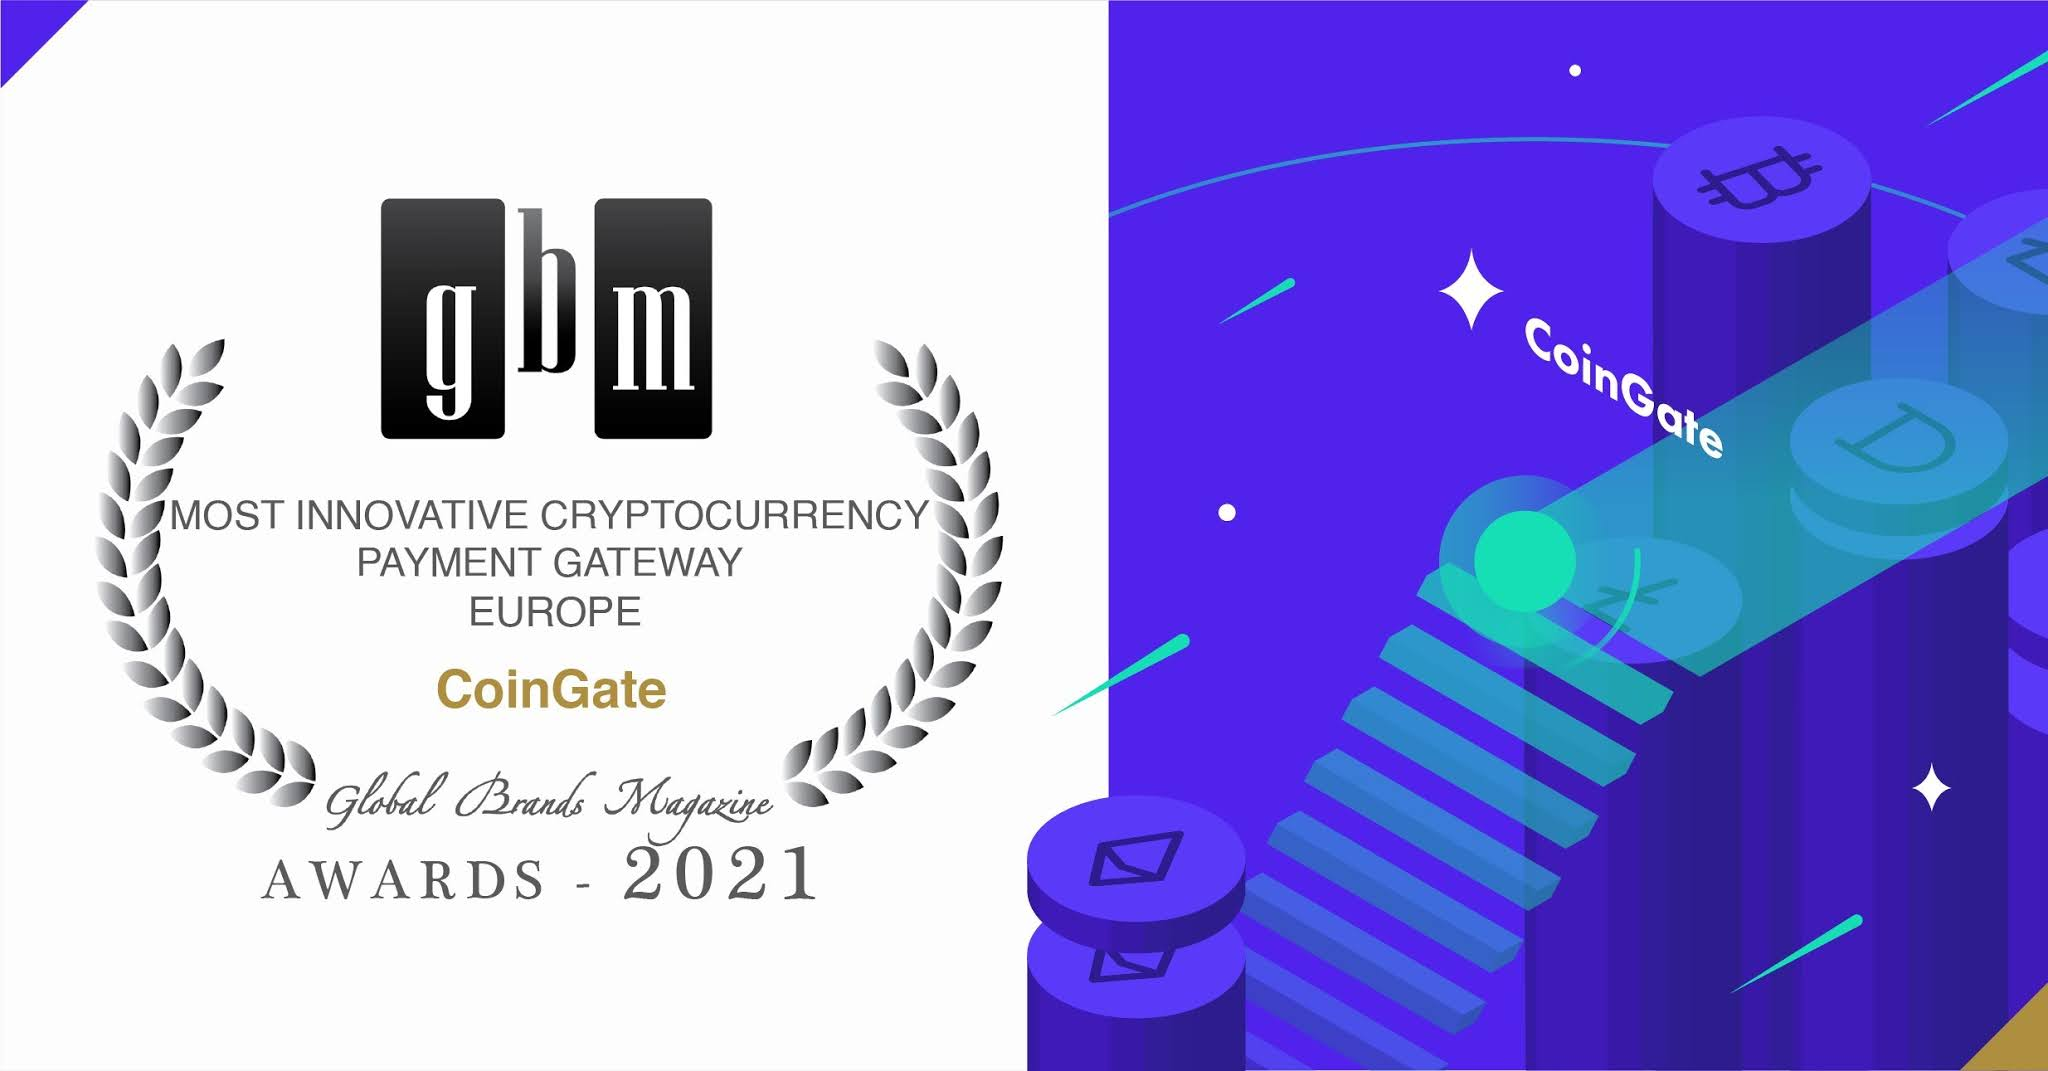 CoinGate wins Most Innovative Cryptocurrency Payment Gateway in Europe 2021 award